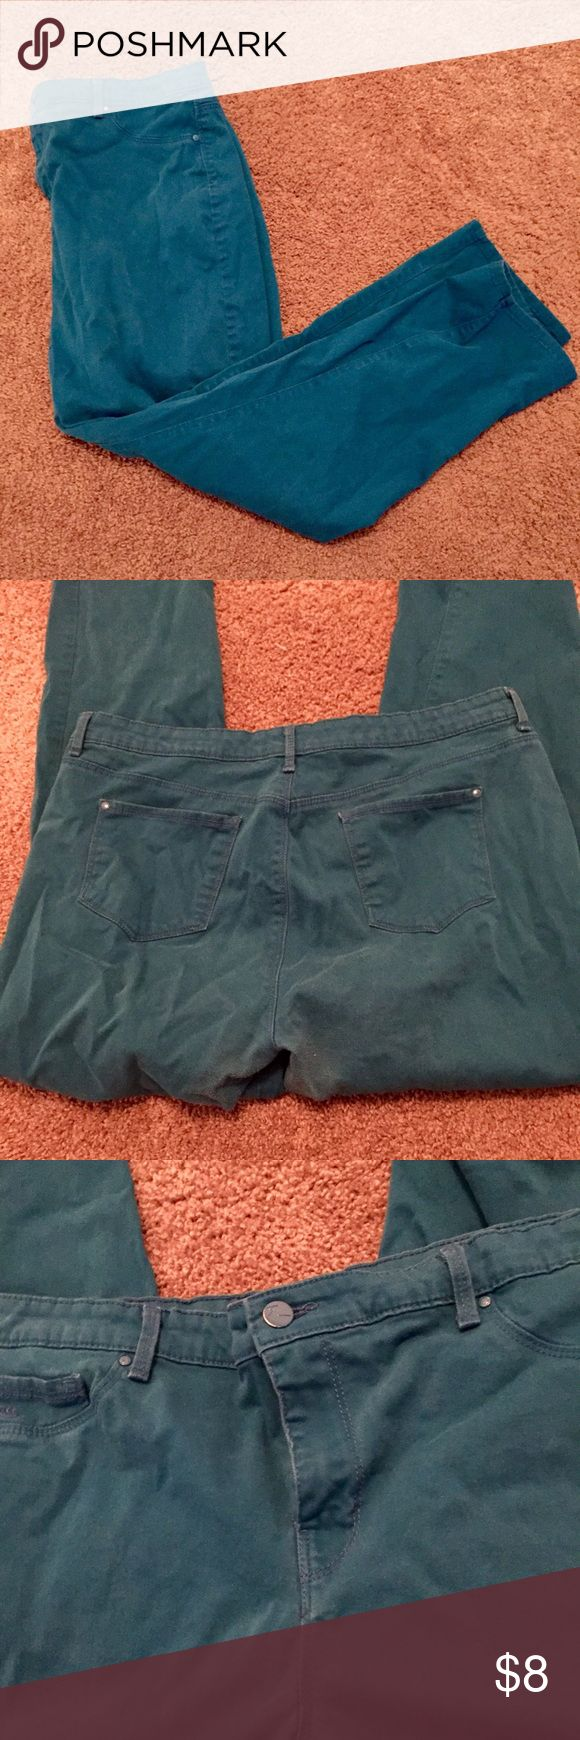 Gloria Vanderbilt Sadie Slim Teal Skinny Jeans Great pair of comfortable slim cut jeans, in a super-fun bright teal color. Great for casual wear but nice enough for a work environment as well! 💖😊 Gloria Vanderbilt Pants Skinny